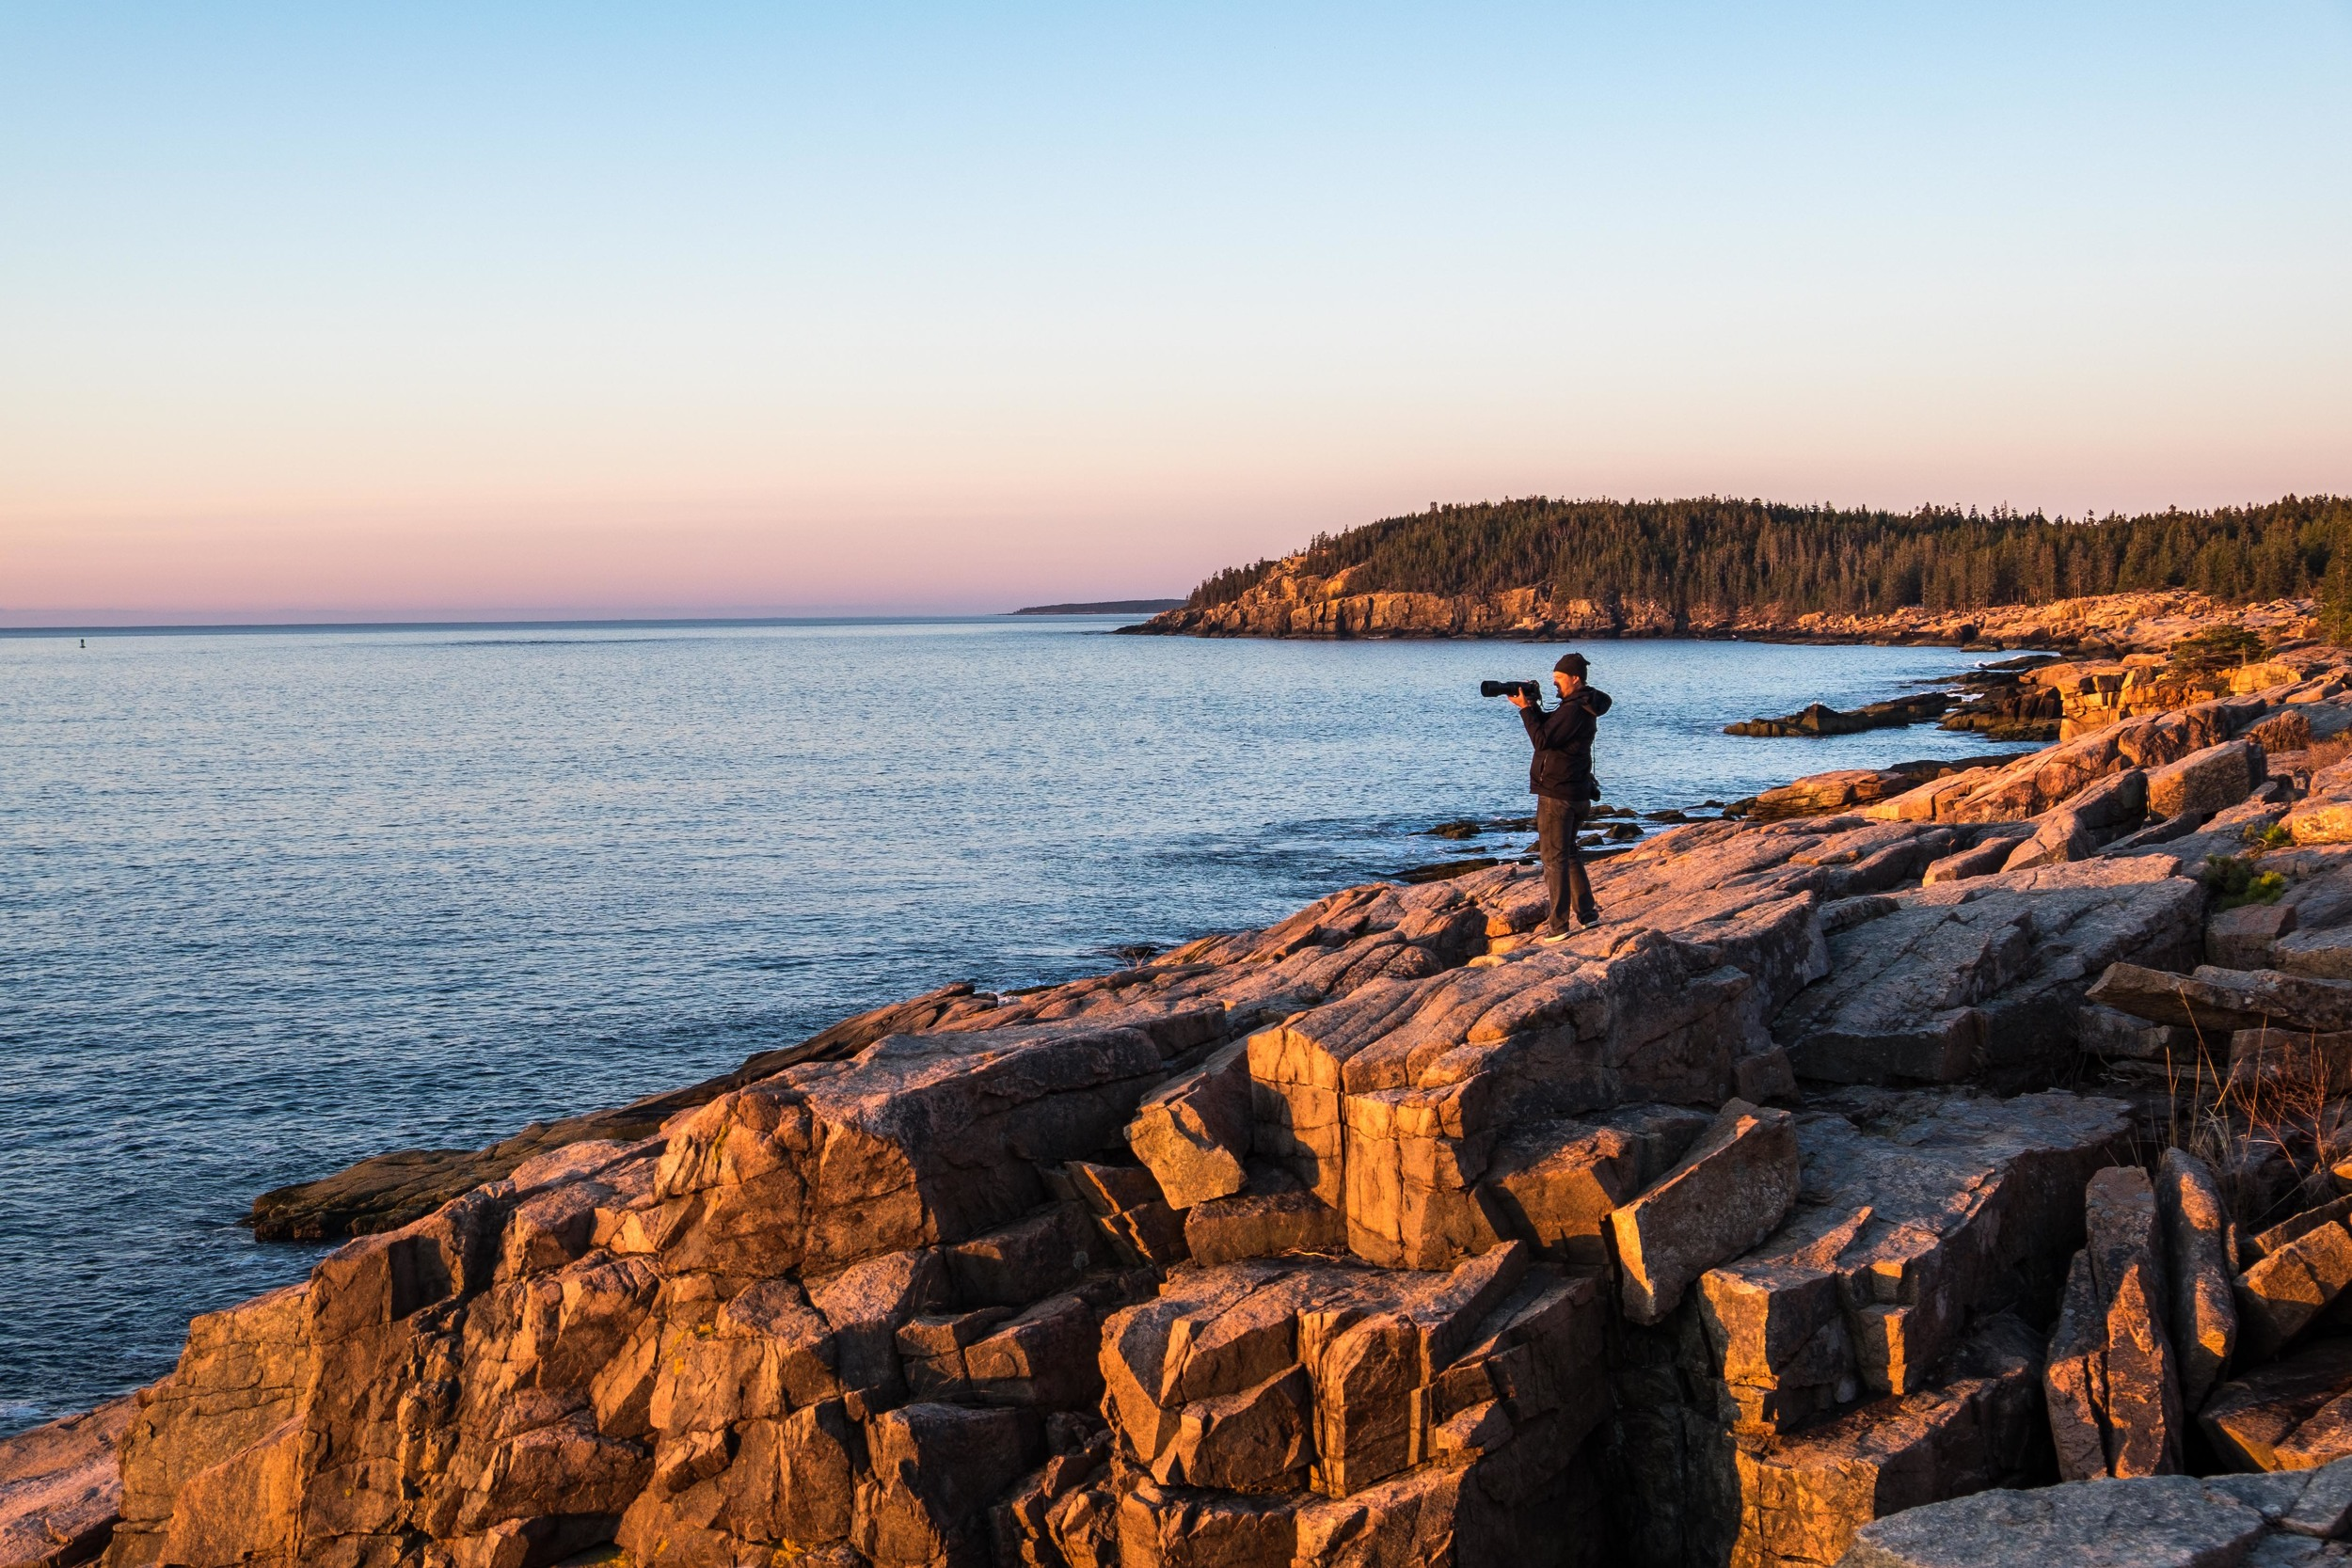 The coastline of Maine is a landscape photographers dream.